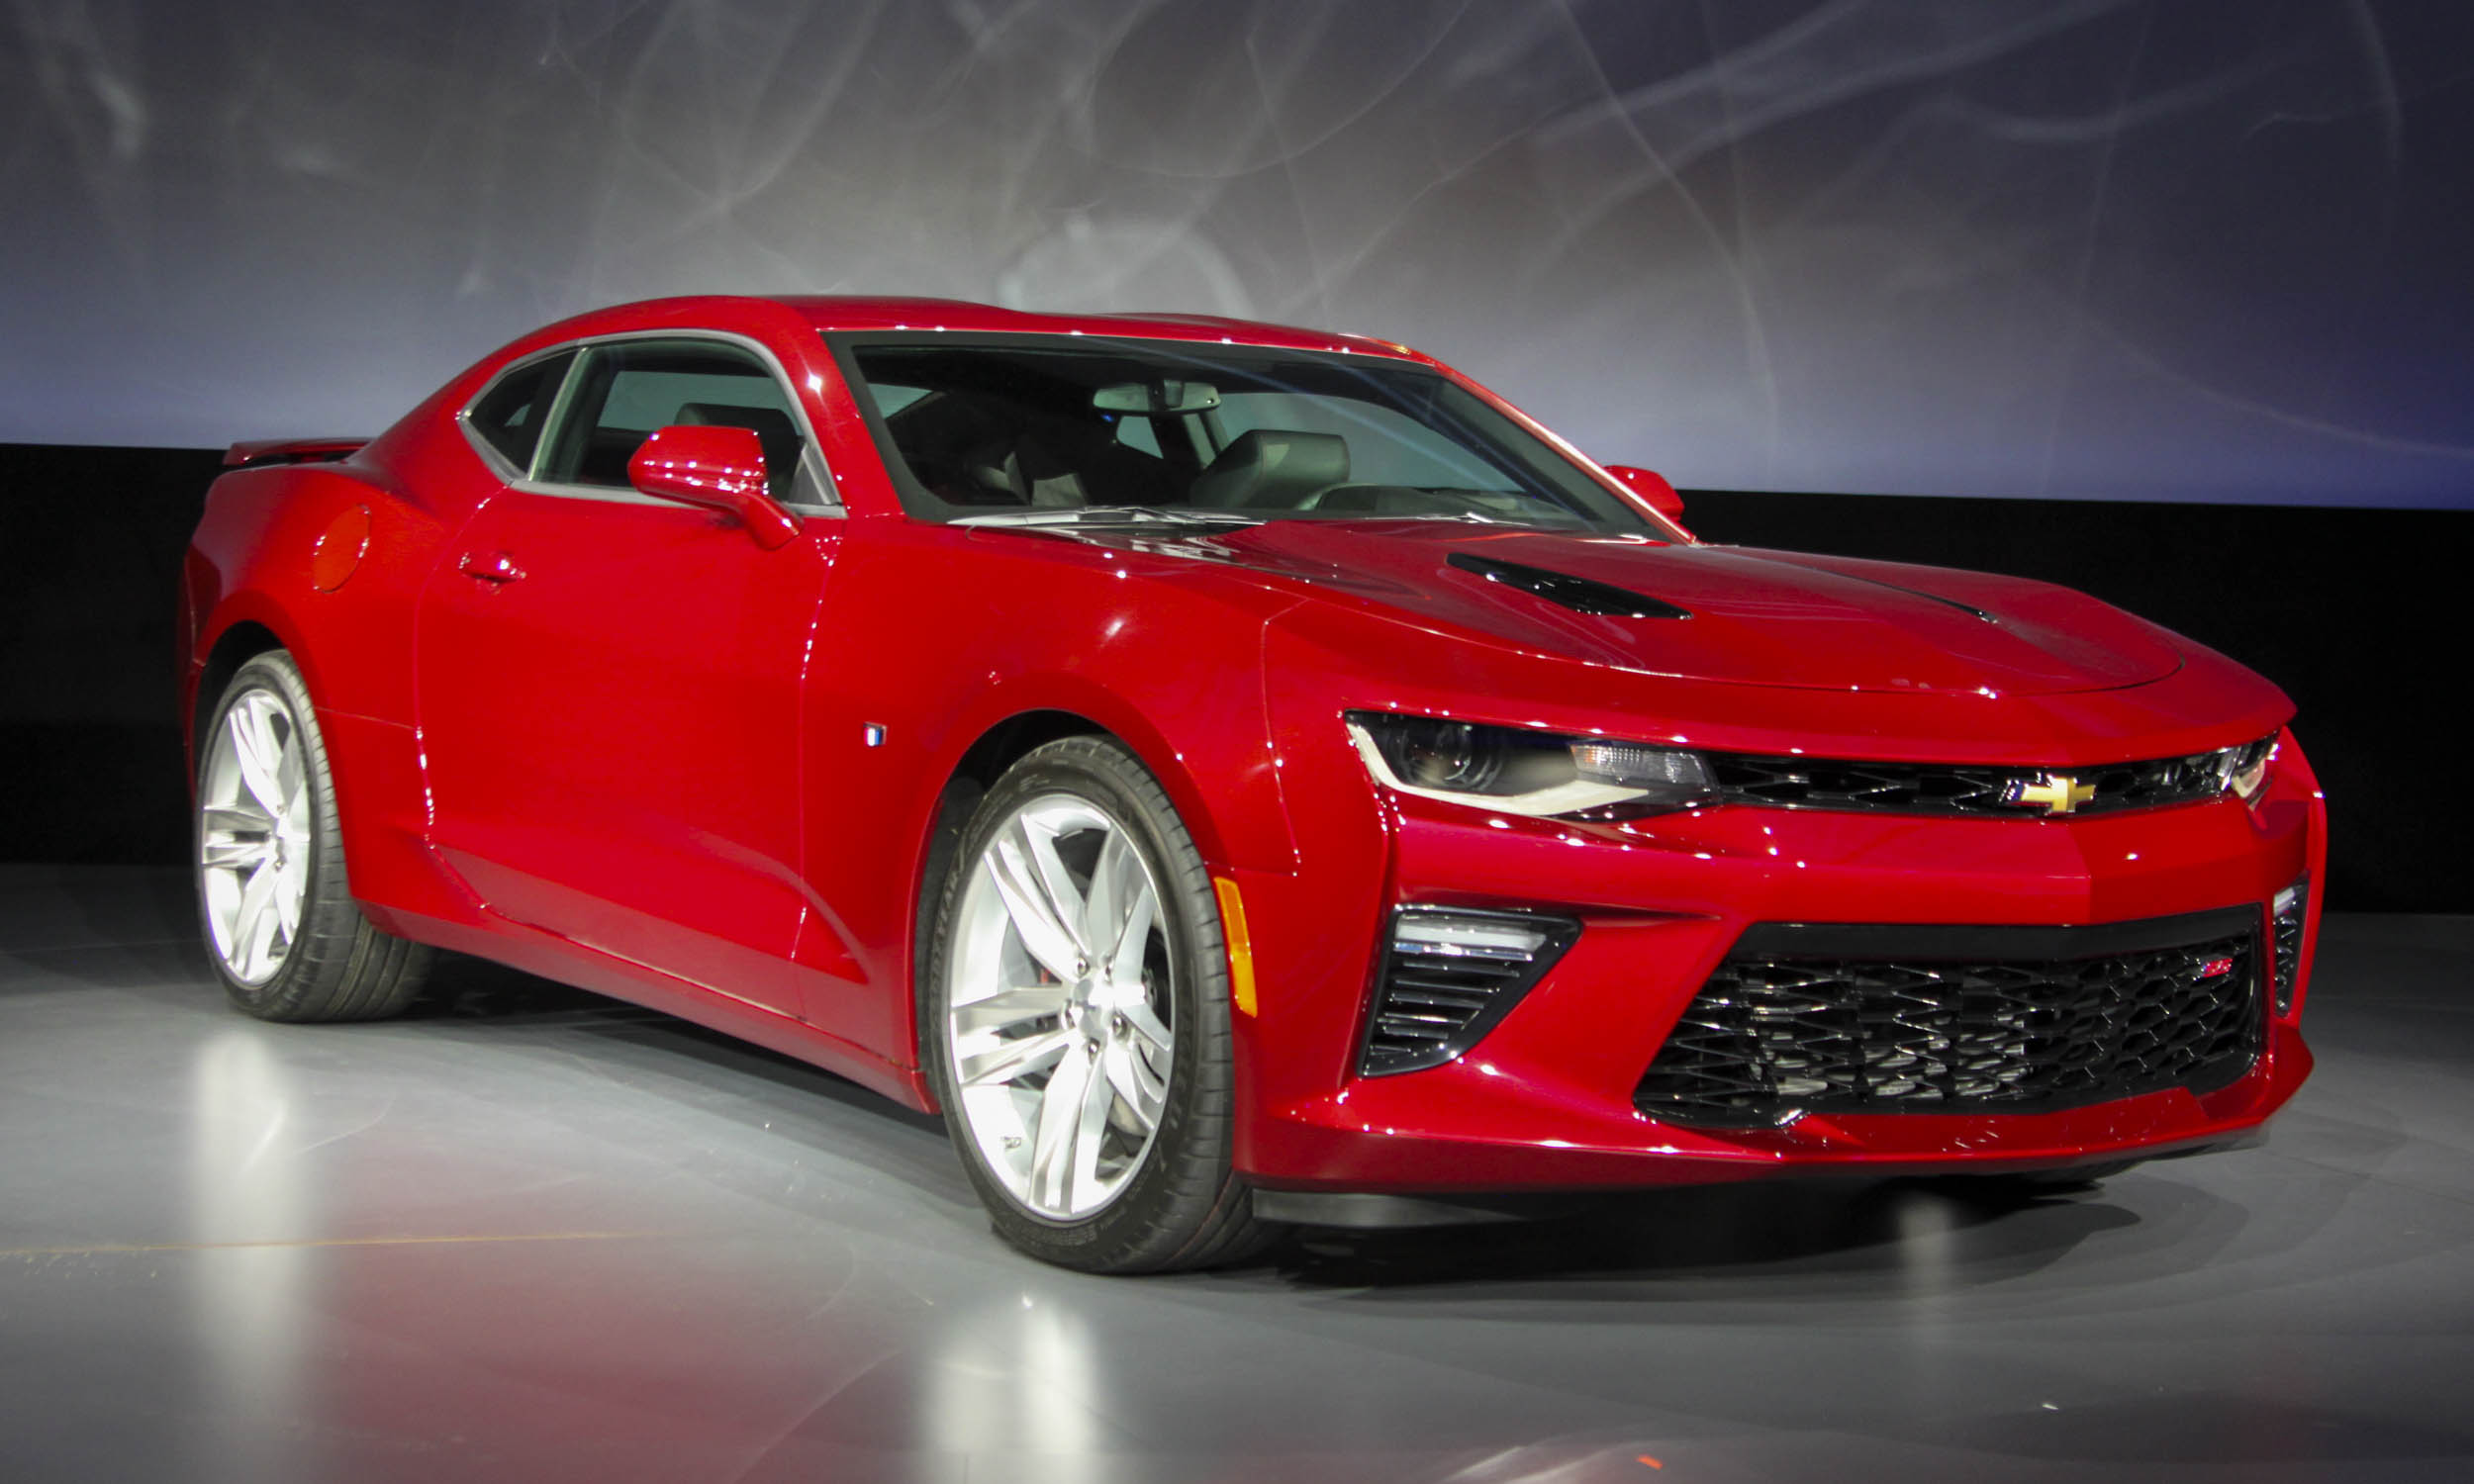 2016 Chevrolet Camaro SS Front Side Exterior Preview